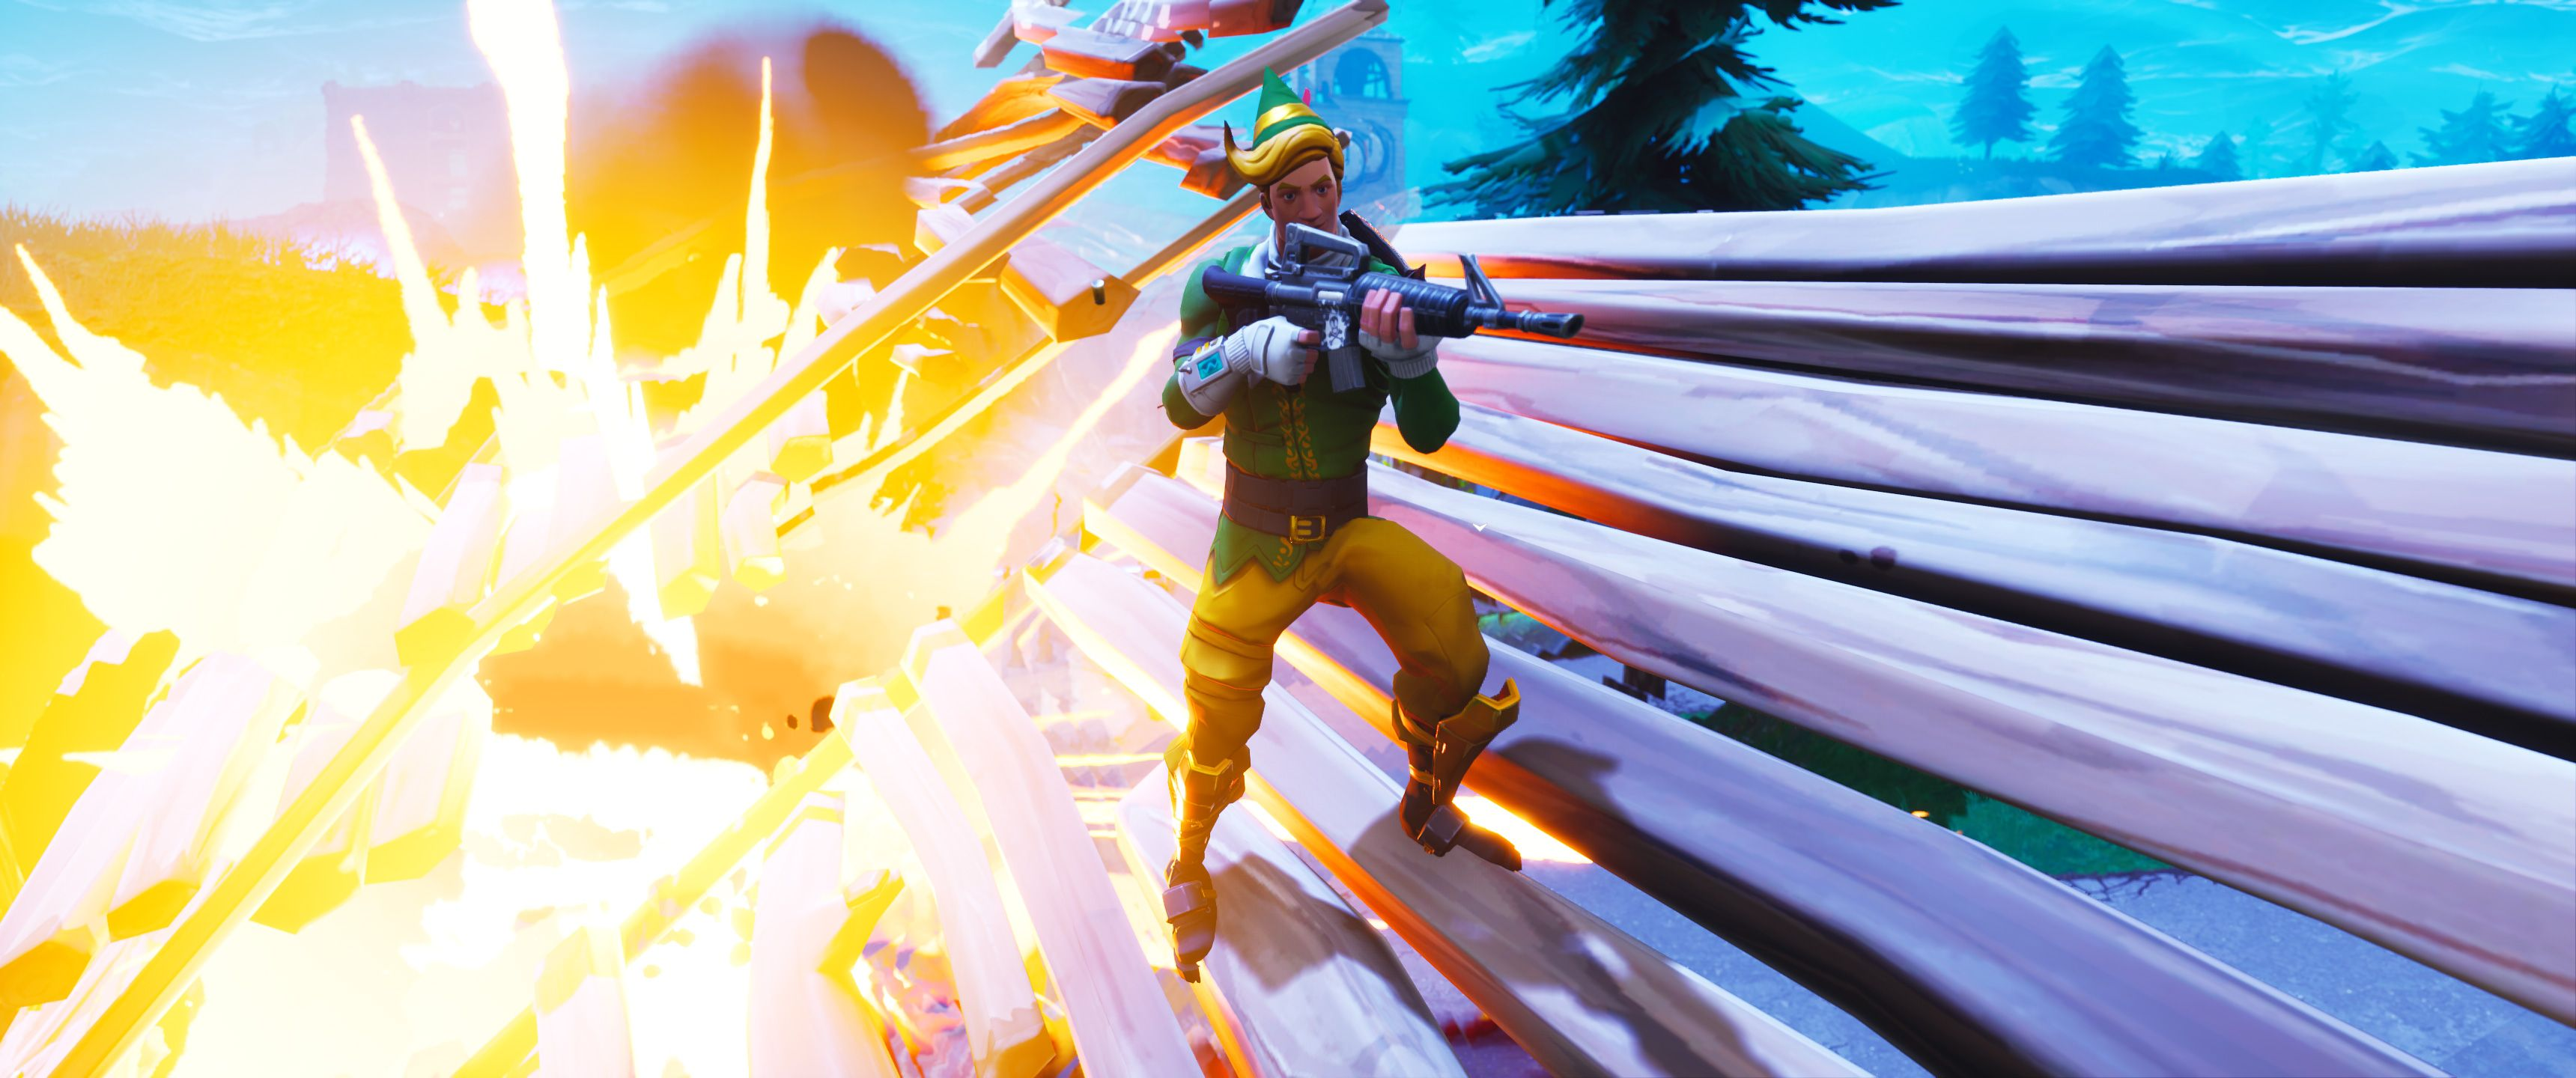 3440x1440 Fortnite Battle Royale, HD Games, 4k Wallpapers, Images, Backgrounds ...